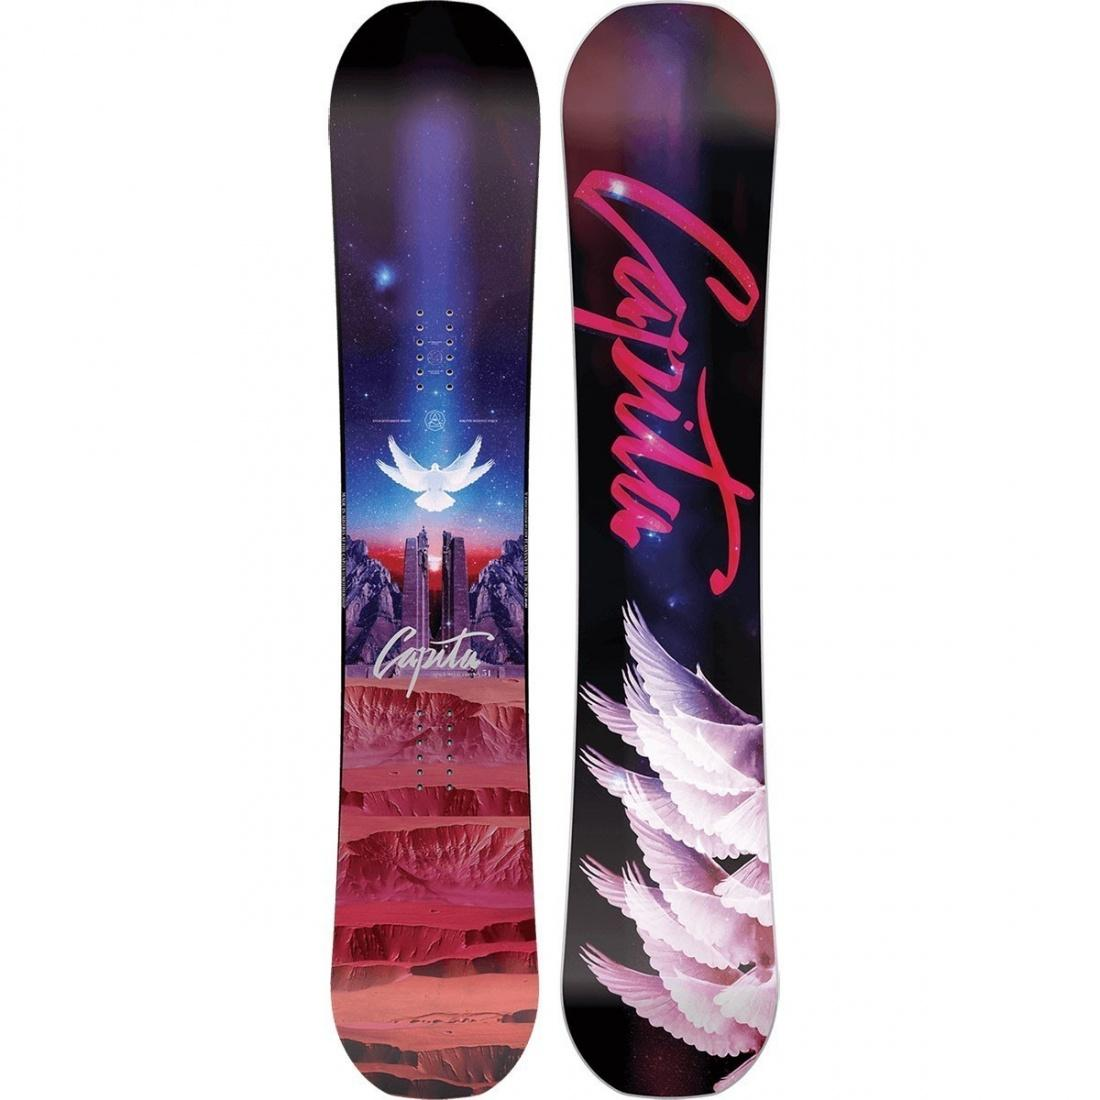 Женский сноуборд Capita Capita Space Metal Fantasy от Boardshop-1